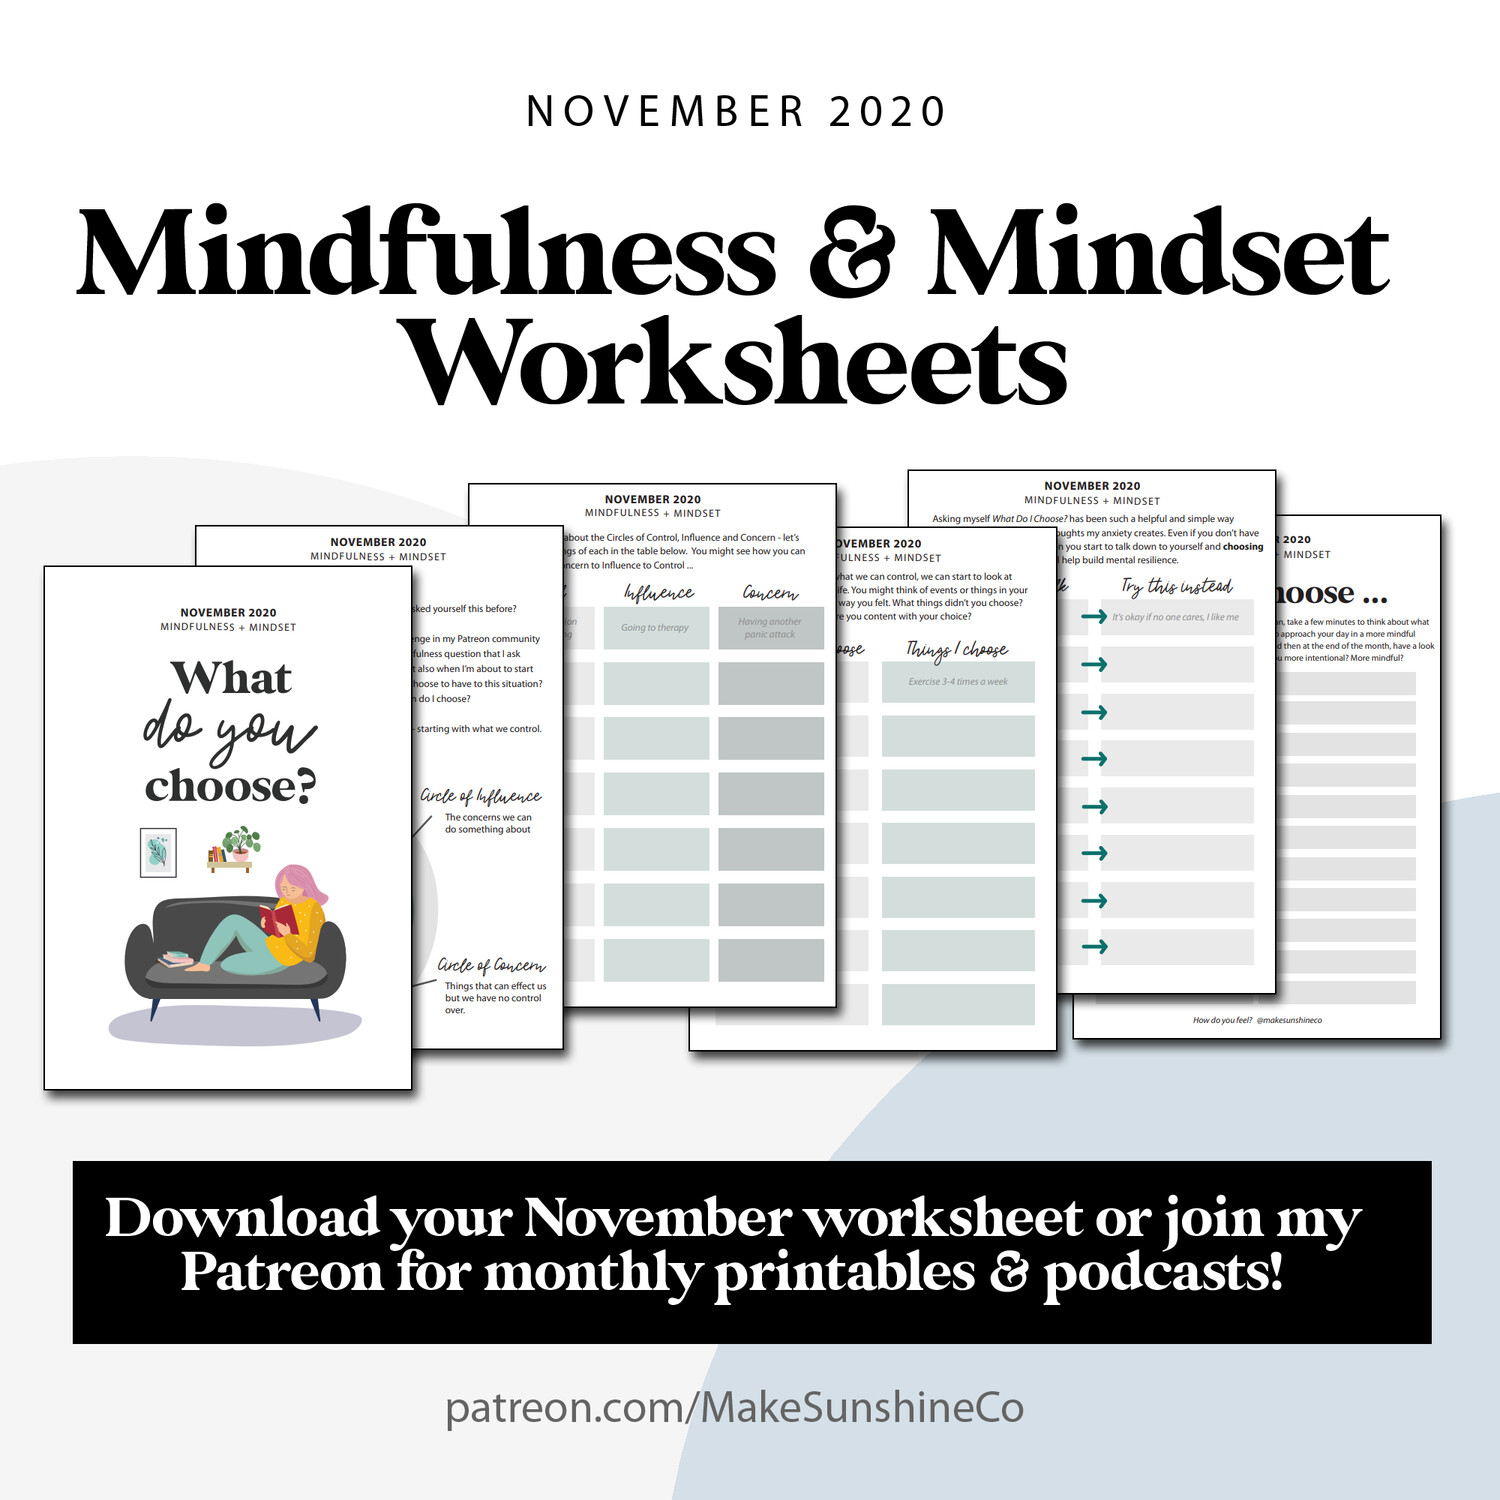 Mindfulness & Mindset Worksheets | November 2020 | What do you choose?